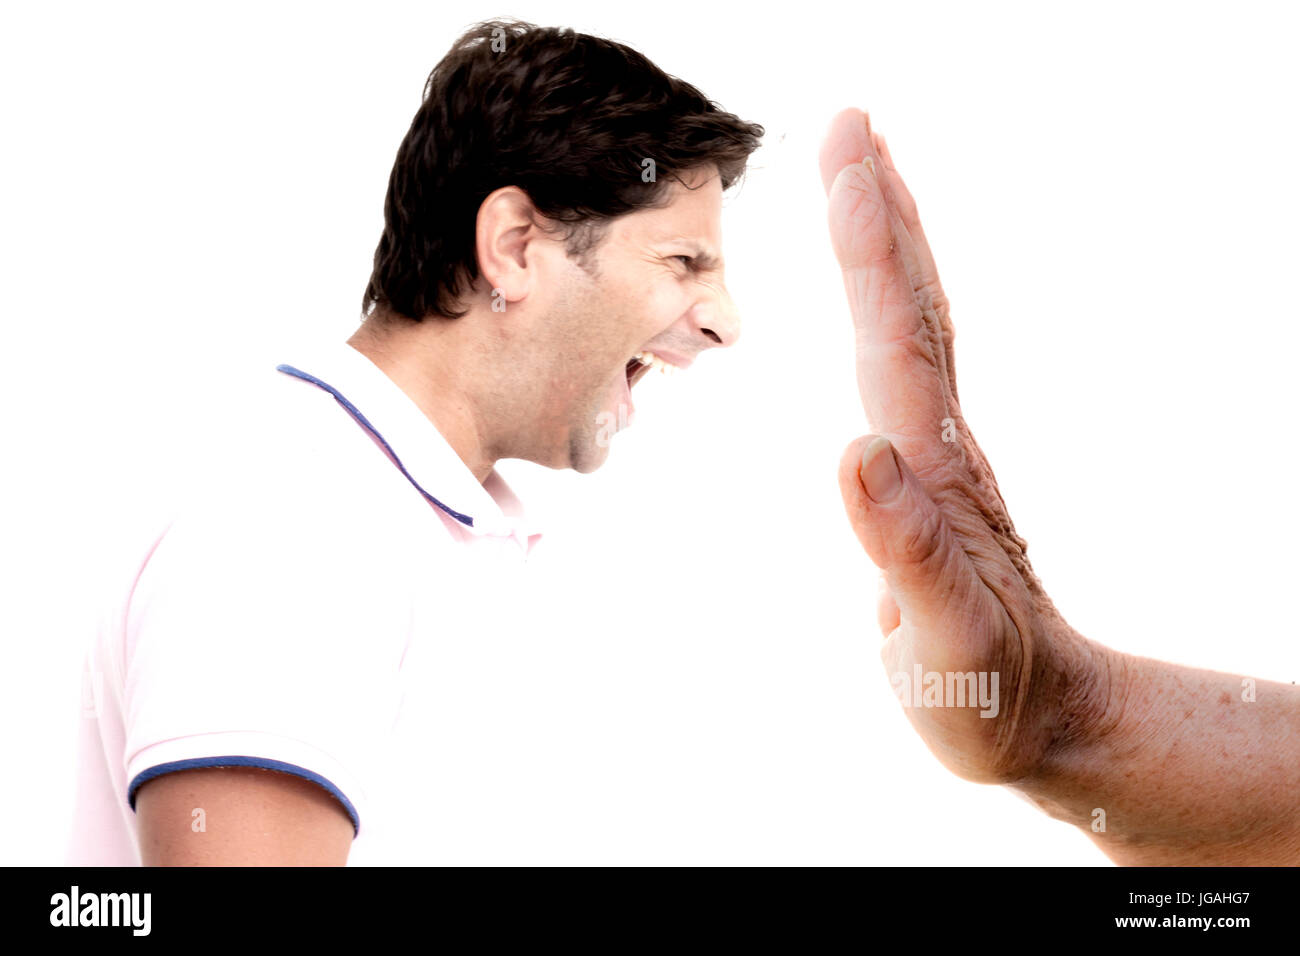 Hand of a woman stopping man's shoutings - Stock Image